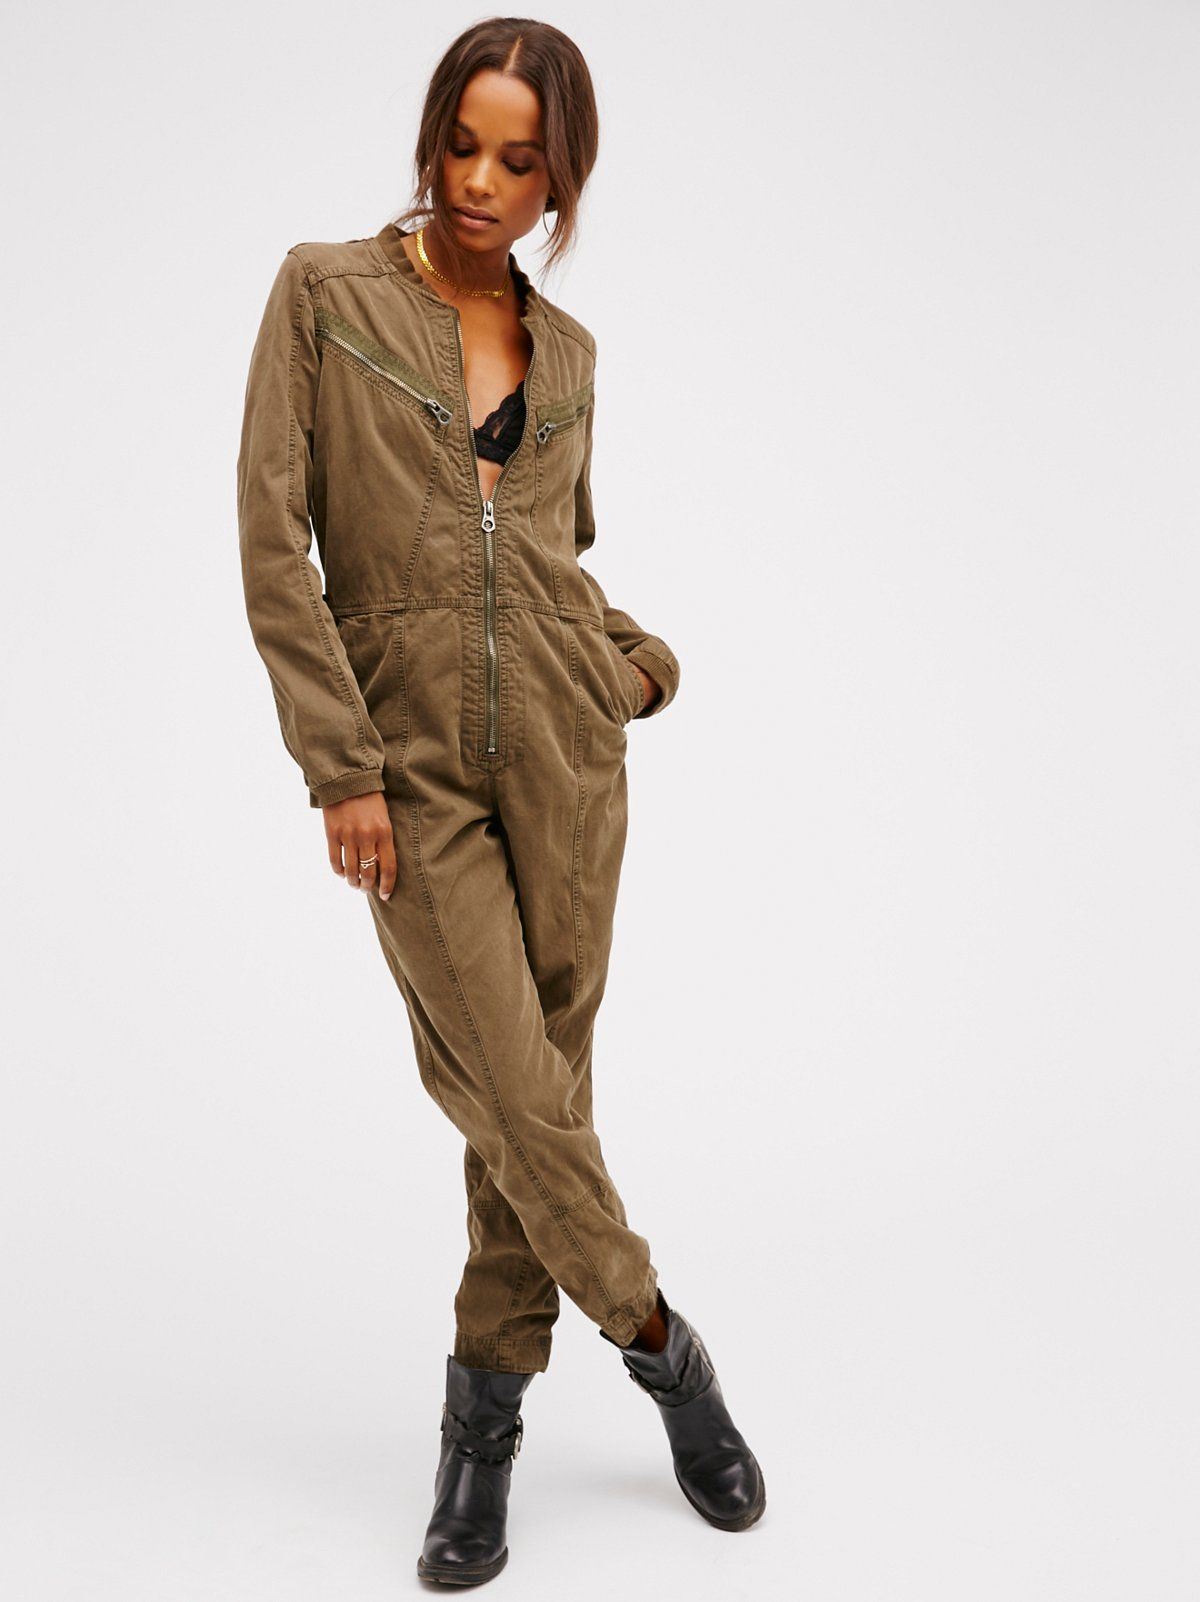 Pin By Thebigbadwolf On High Altitude Jumpsuit Clothes Boiler Suit